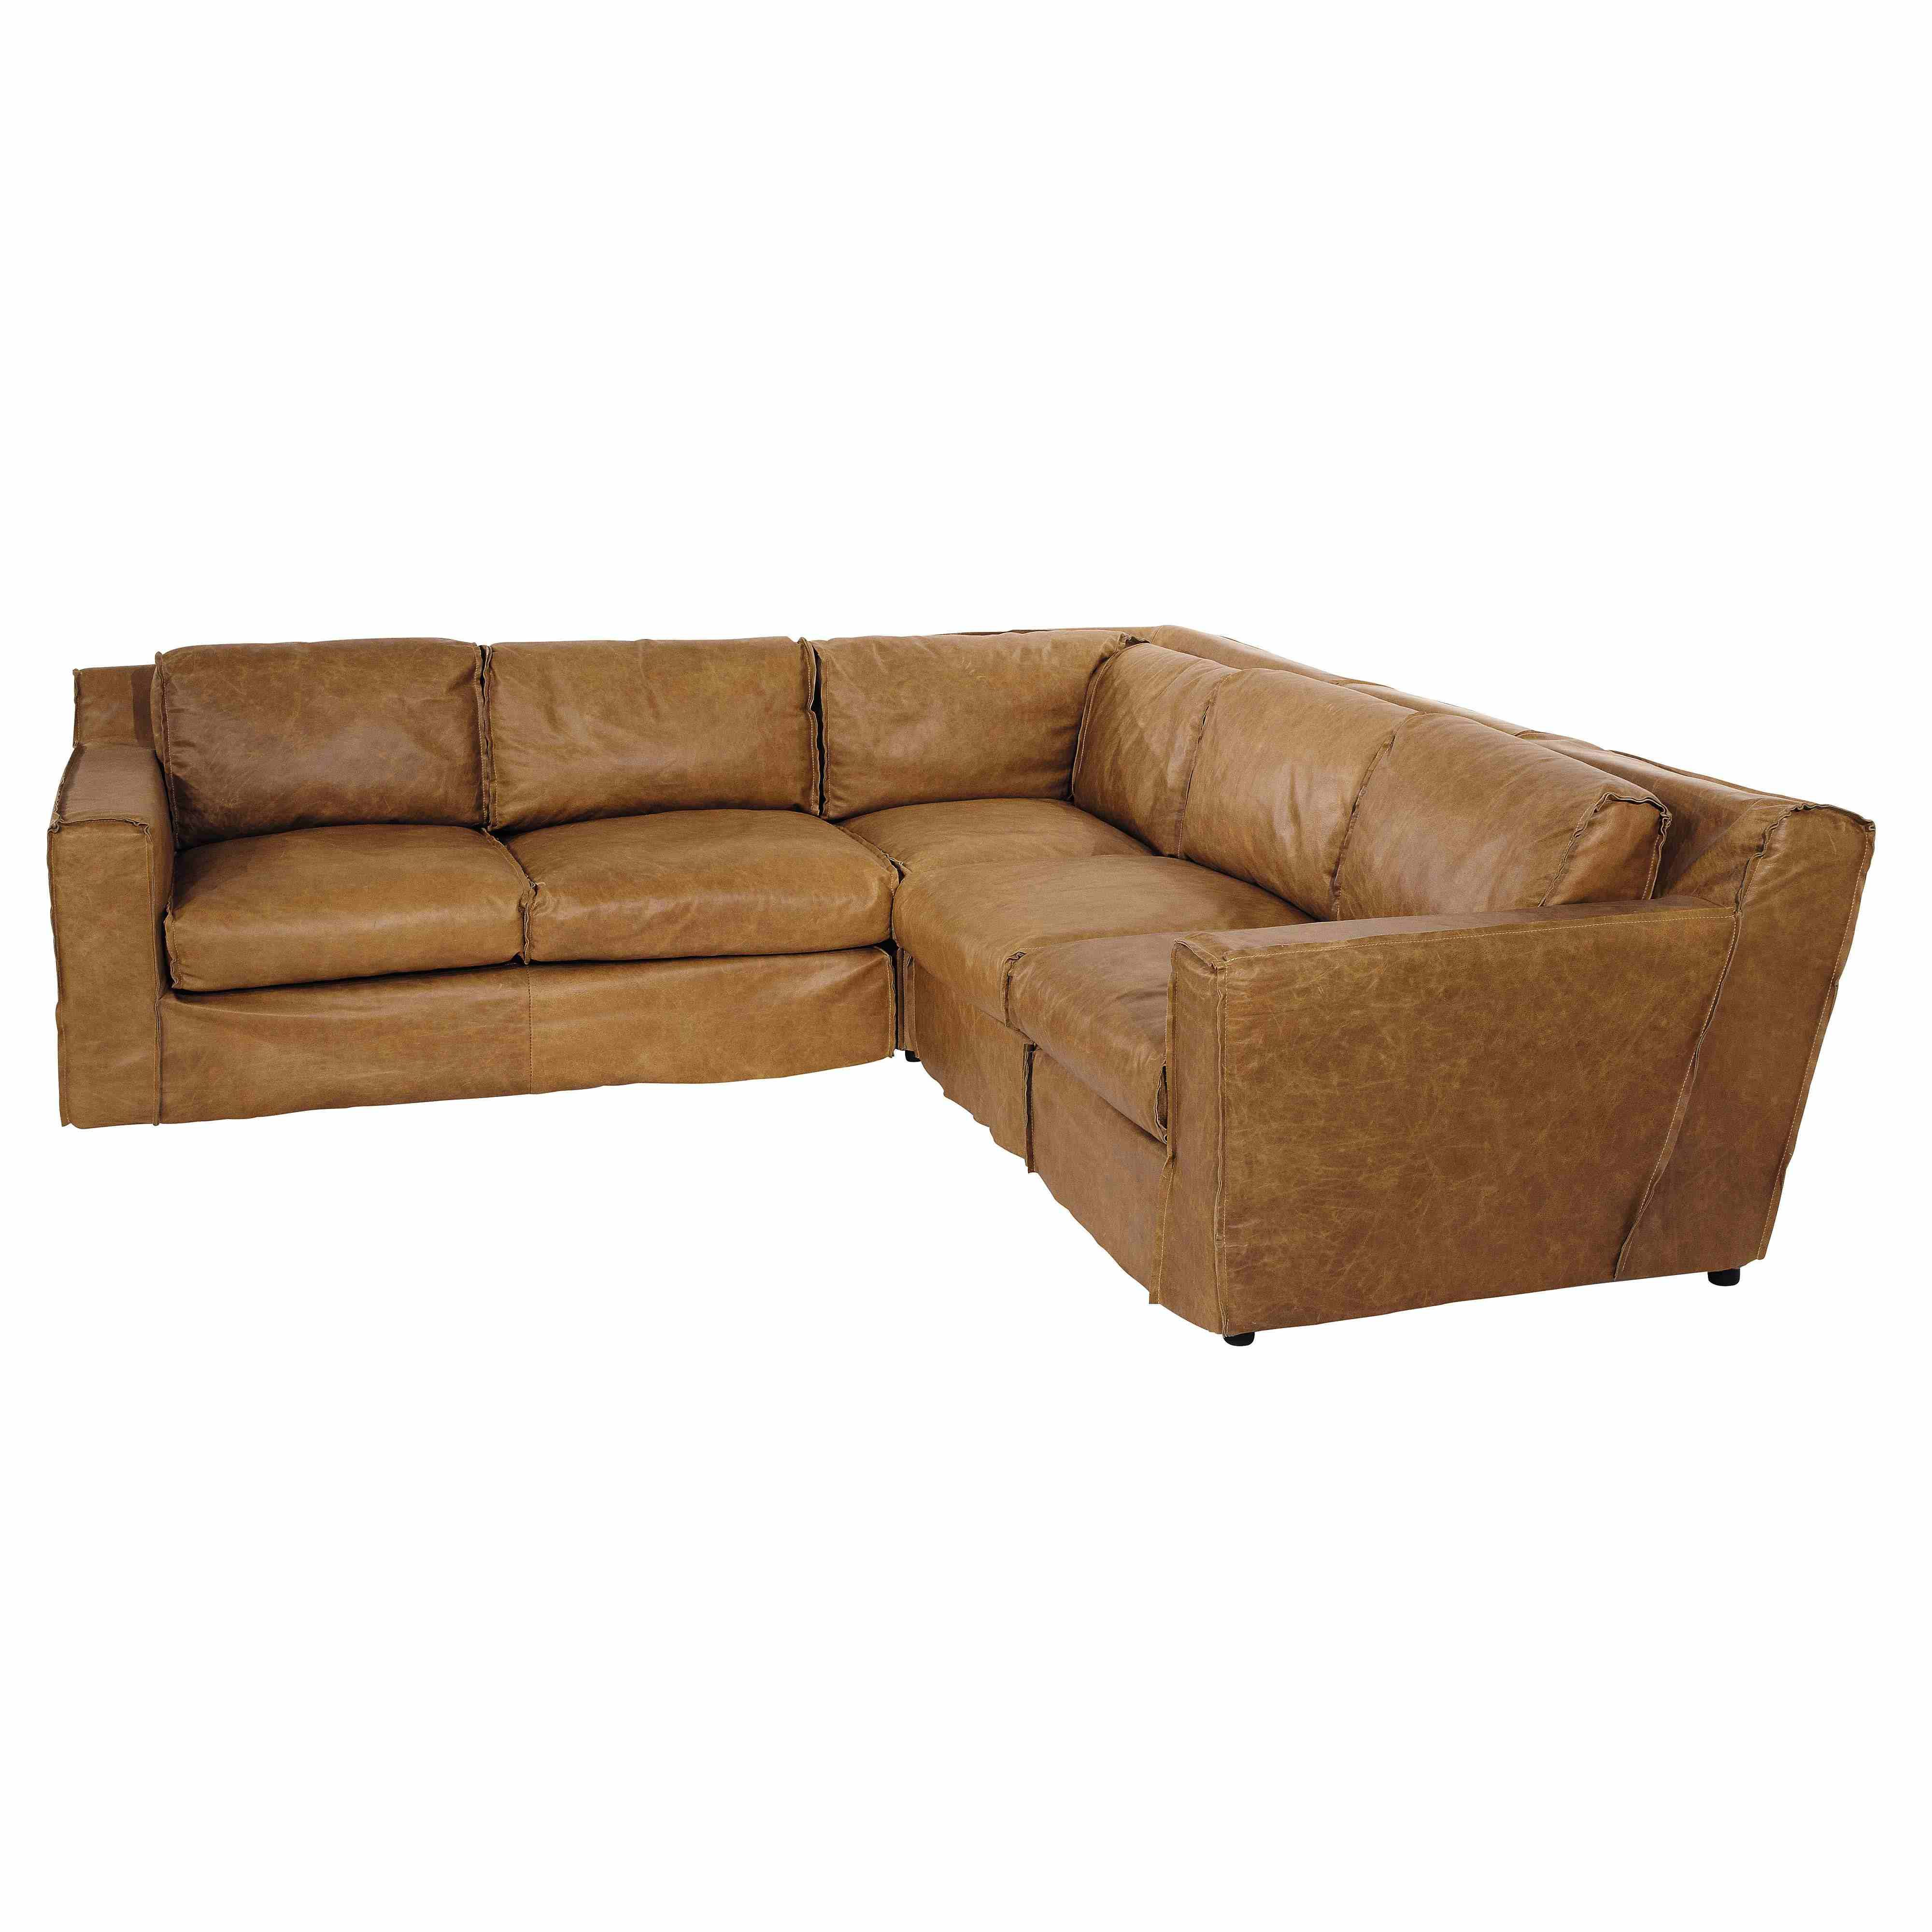 4 Seater Chesterfield Corner Sofa Sofas Happy Spaces Chesterfield Sofa Corner Sofa Sofa